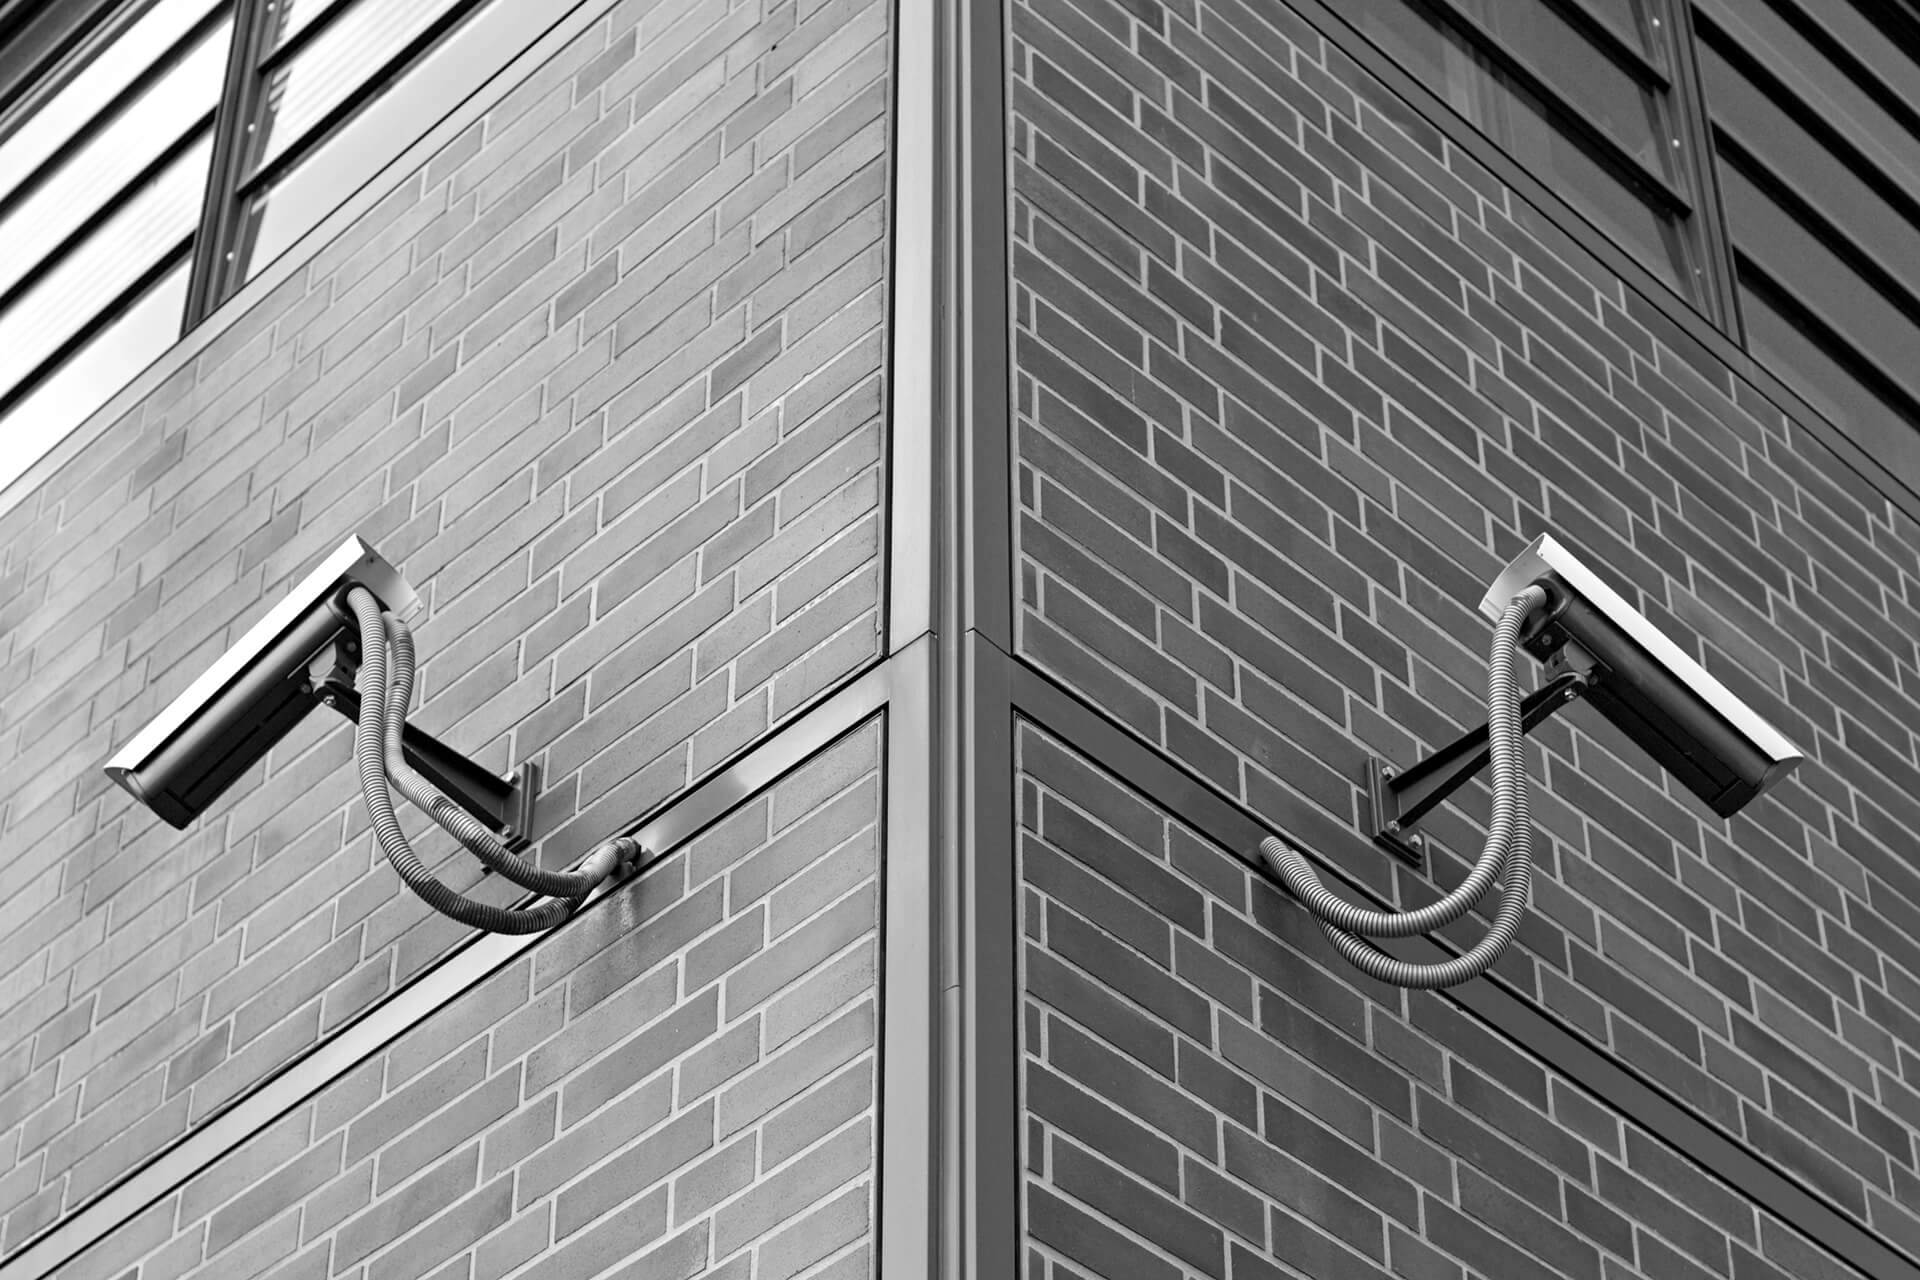 Black and White Image of Symmetric Security Cameras Black and White